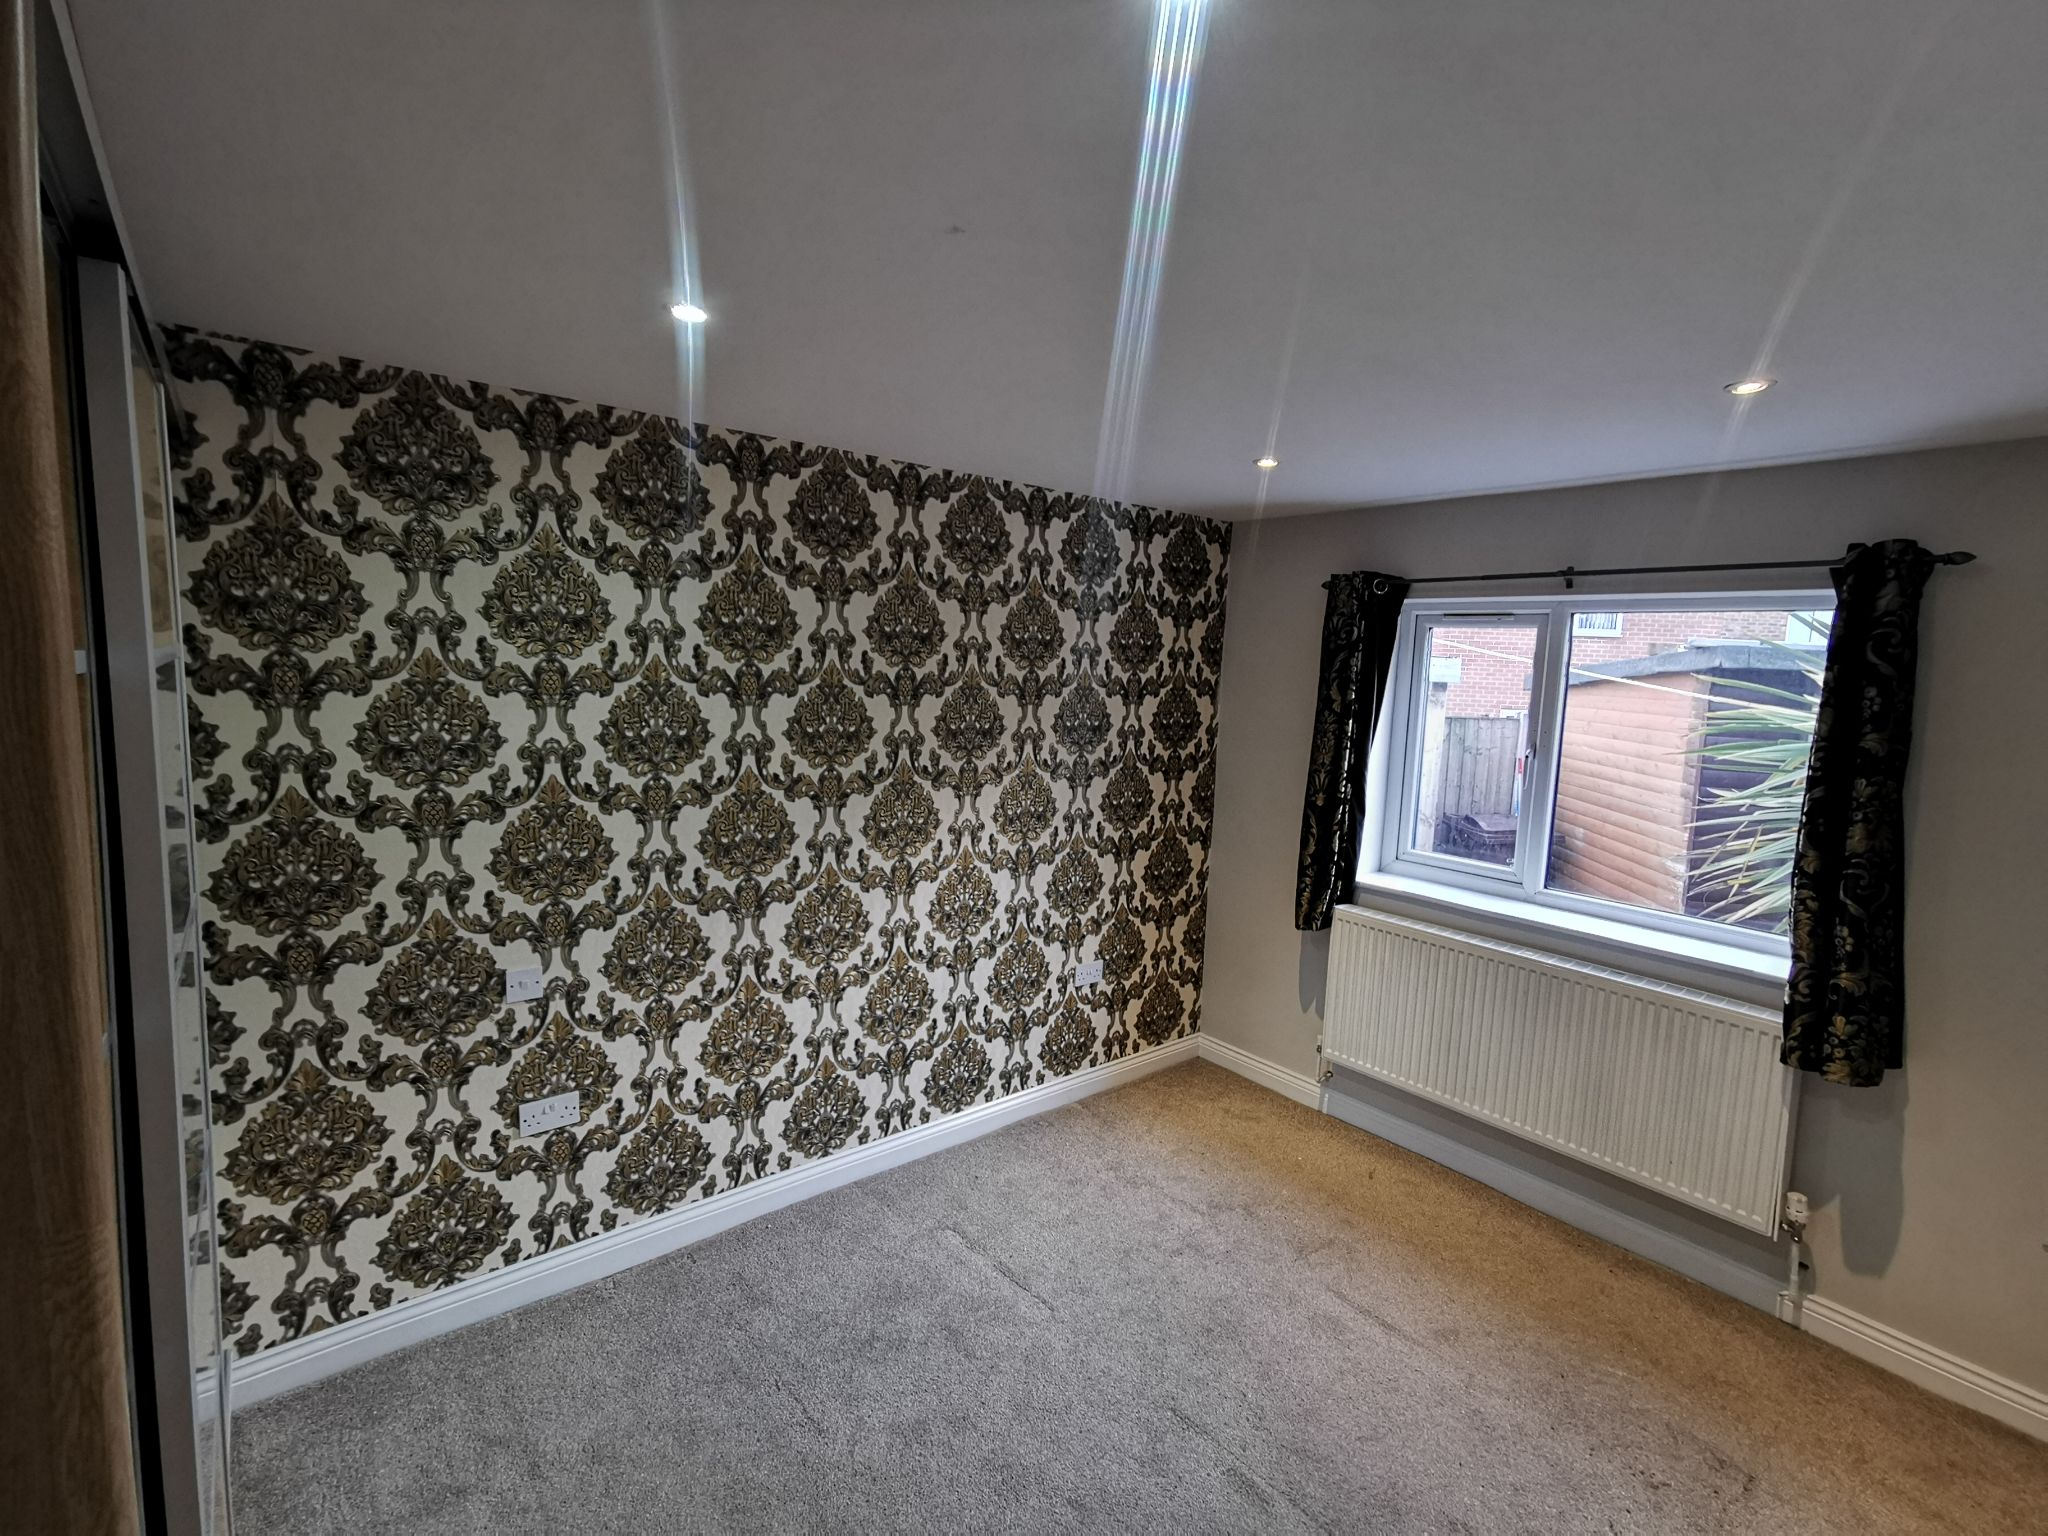 6 bedroom detached bungalow For Sale in Bradford - Photograph 13.